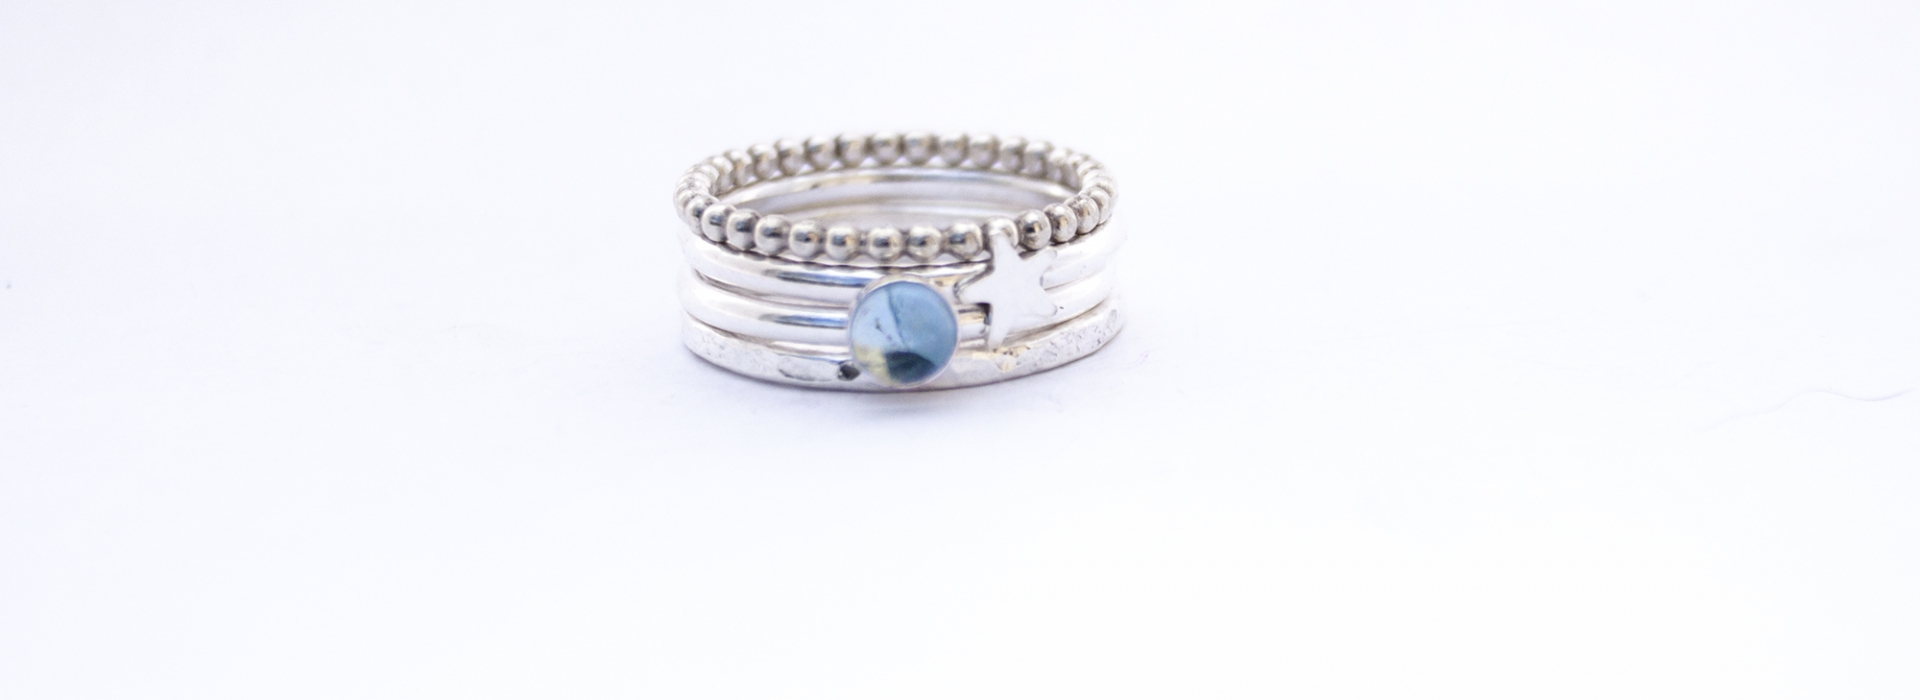 Aquamarine star silver stacking rings